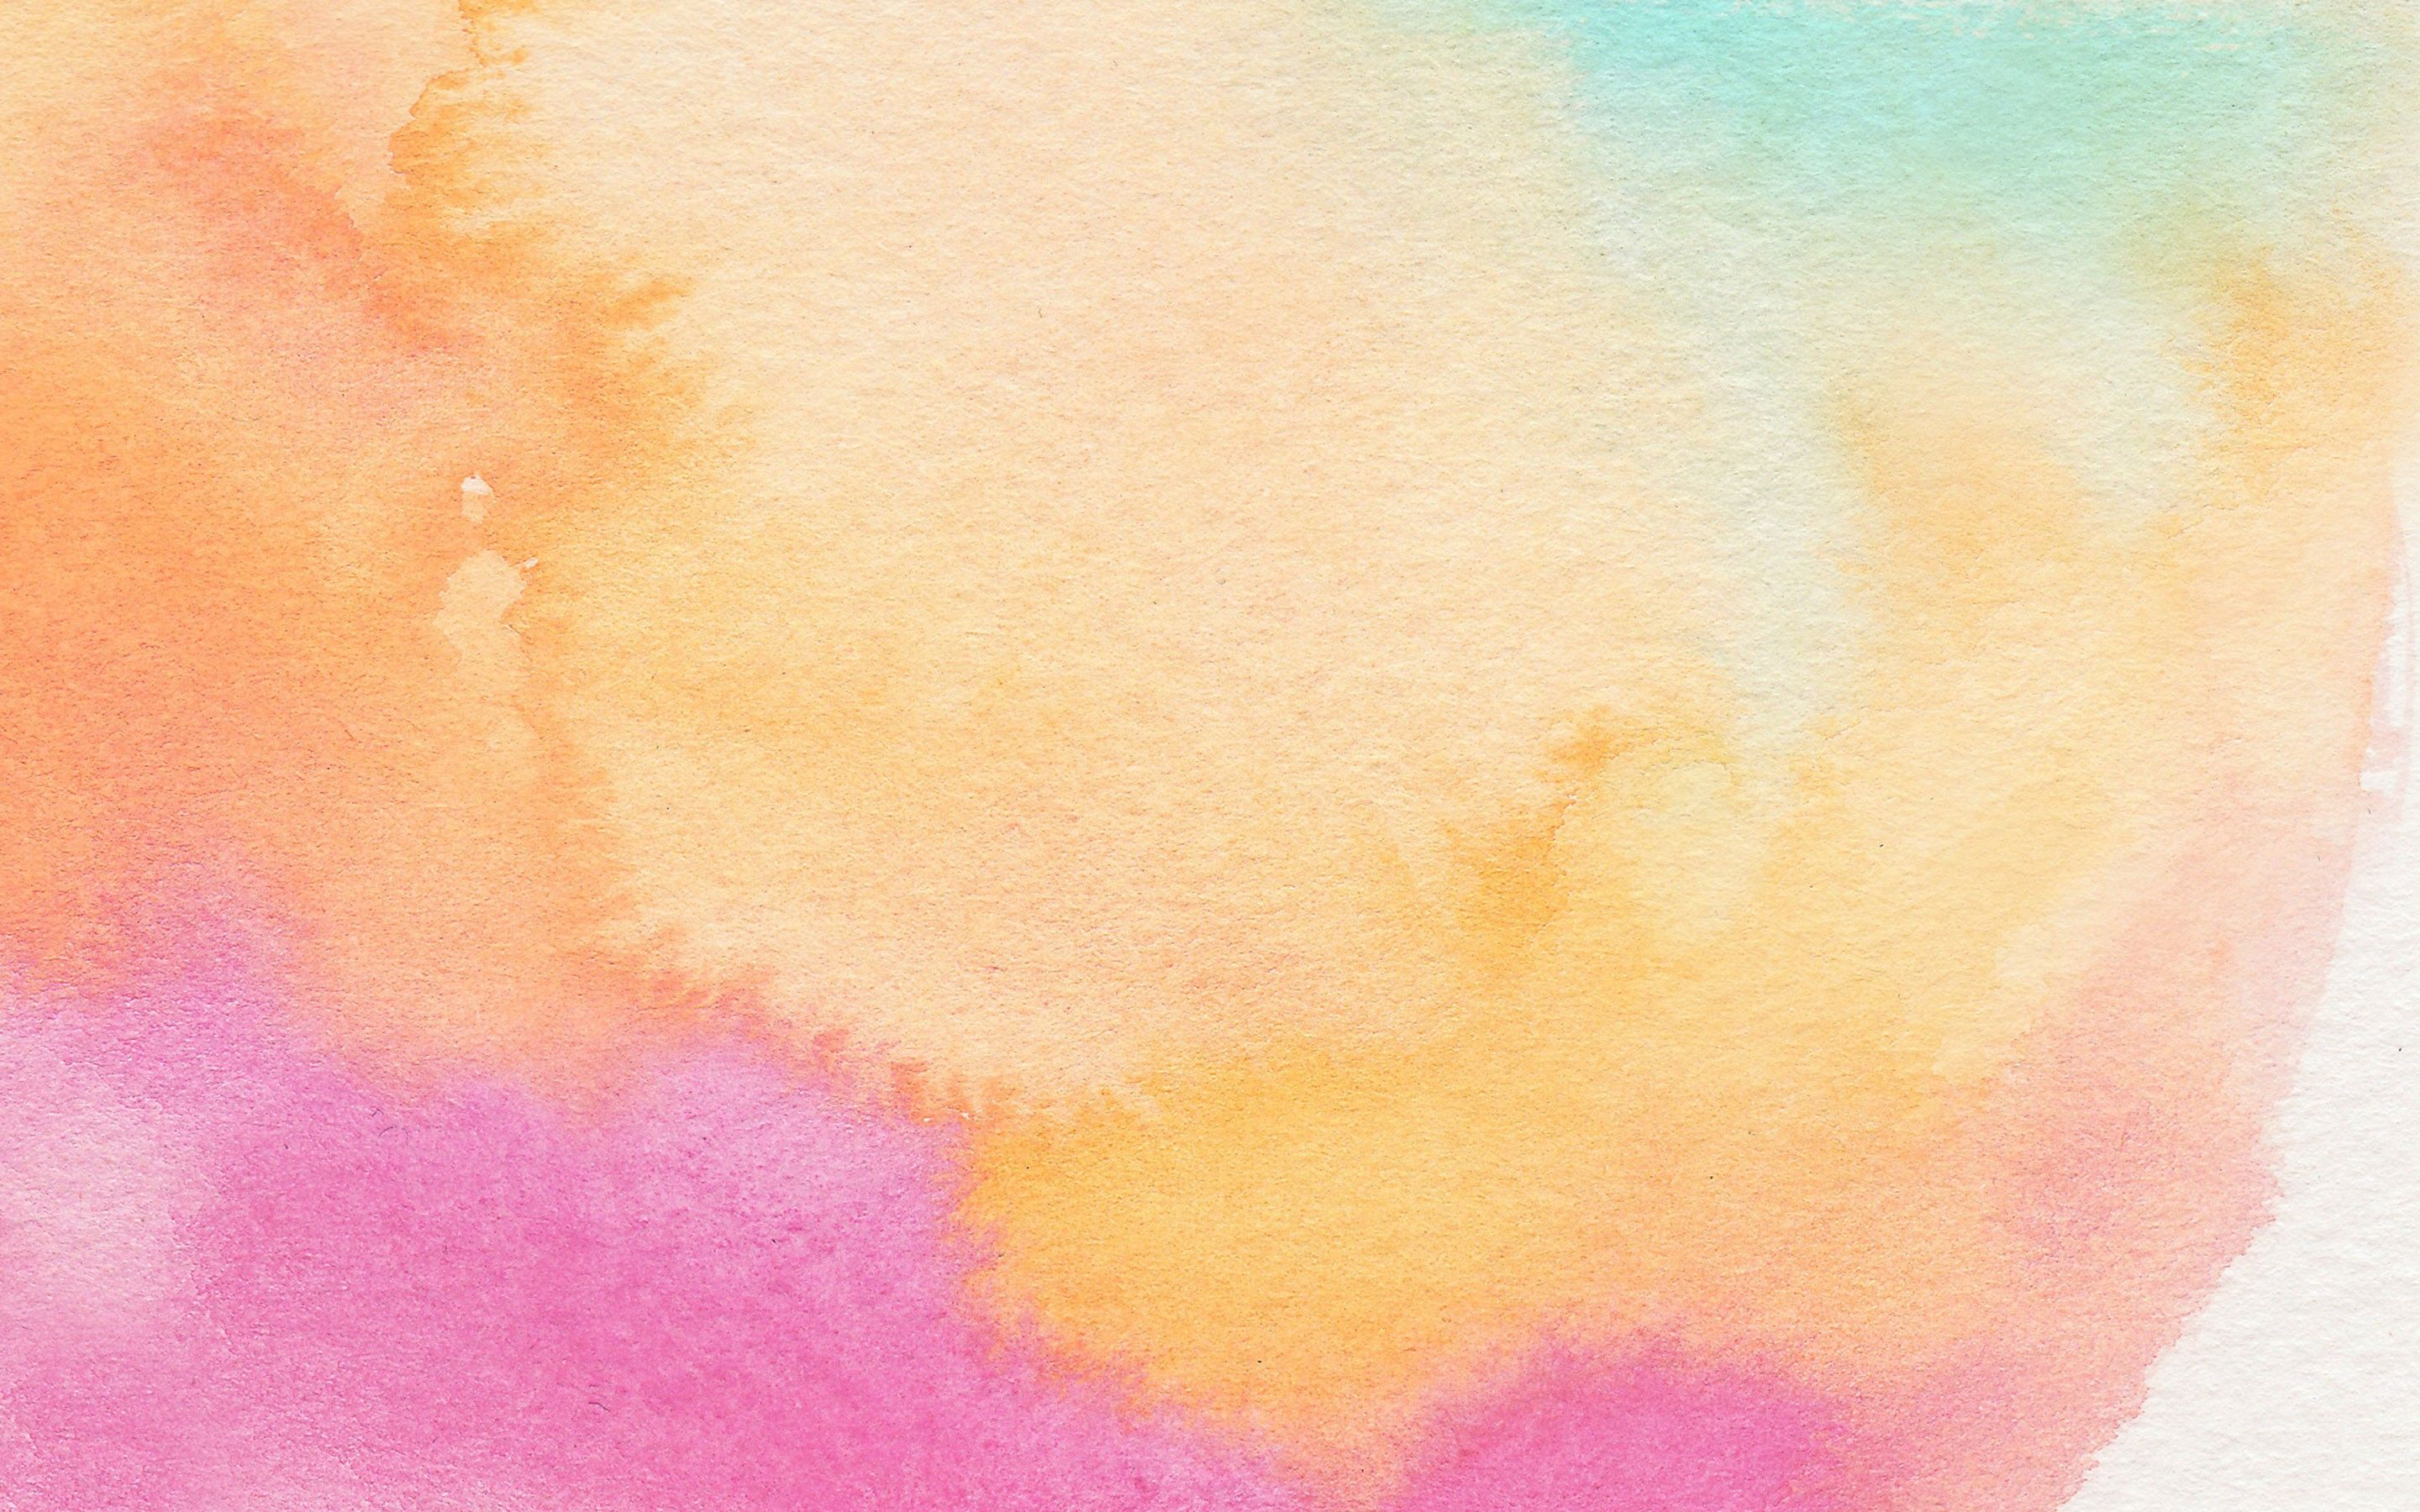 Watercolor Background Tumblr Watercolor Desktop